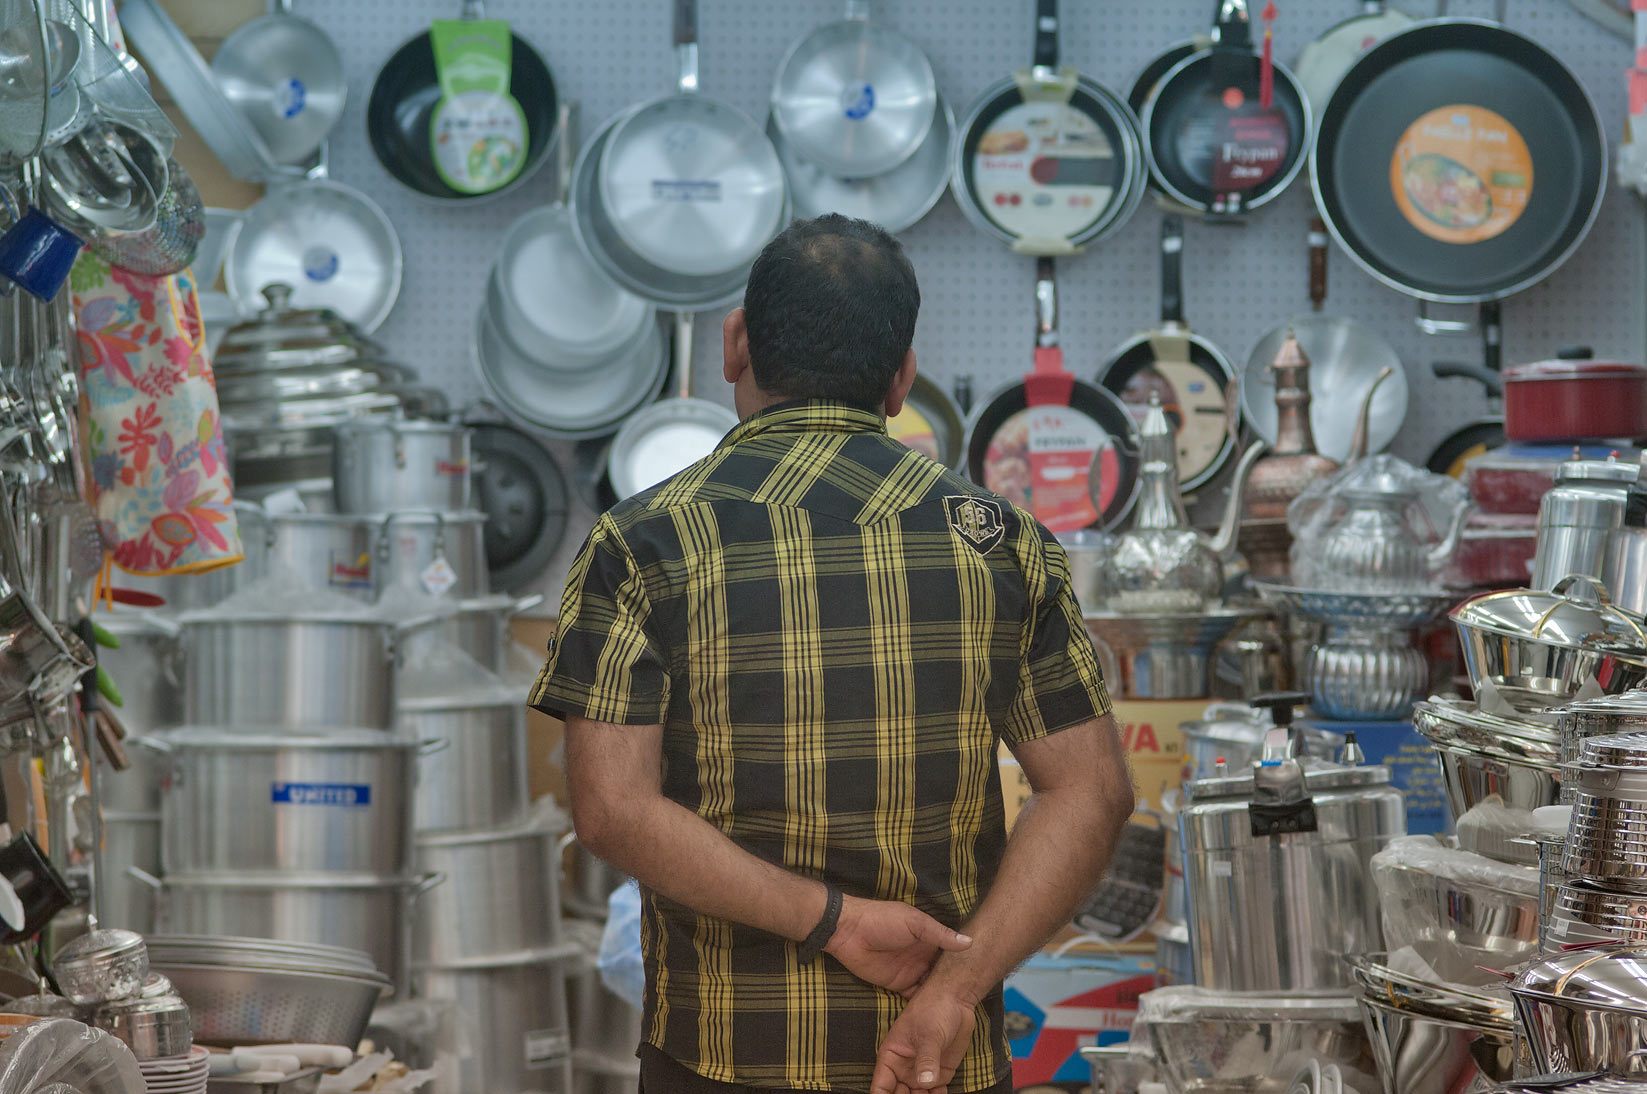 Kitchenware shop in Souq Wakif (Old Market). Doha, Qatar